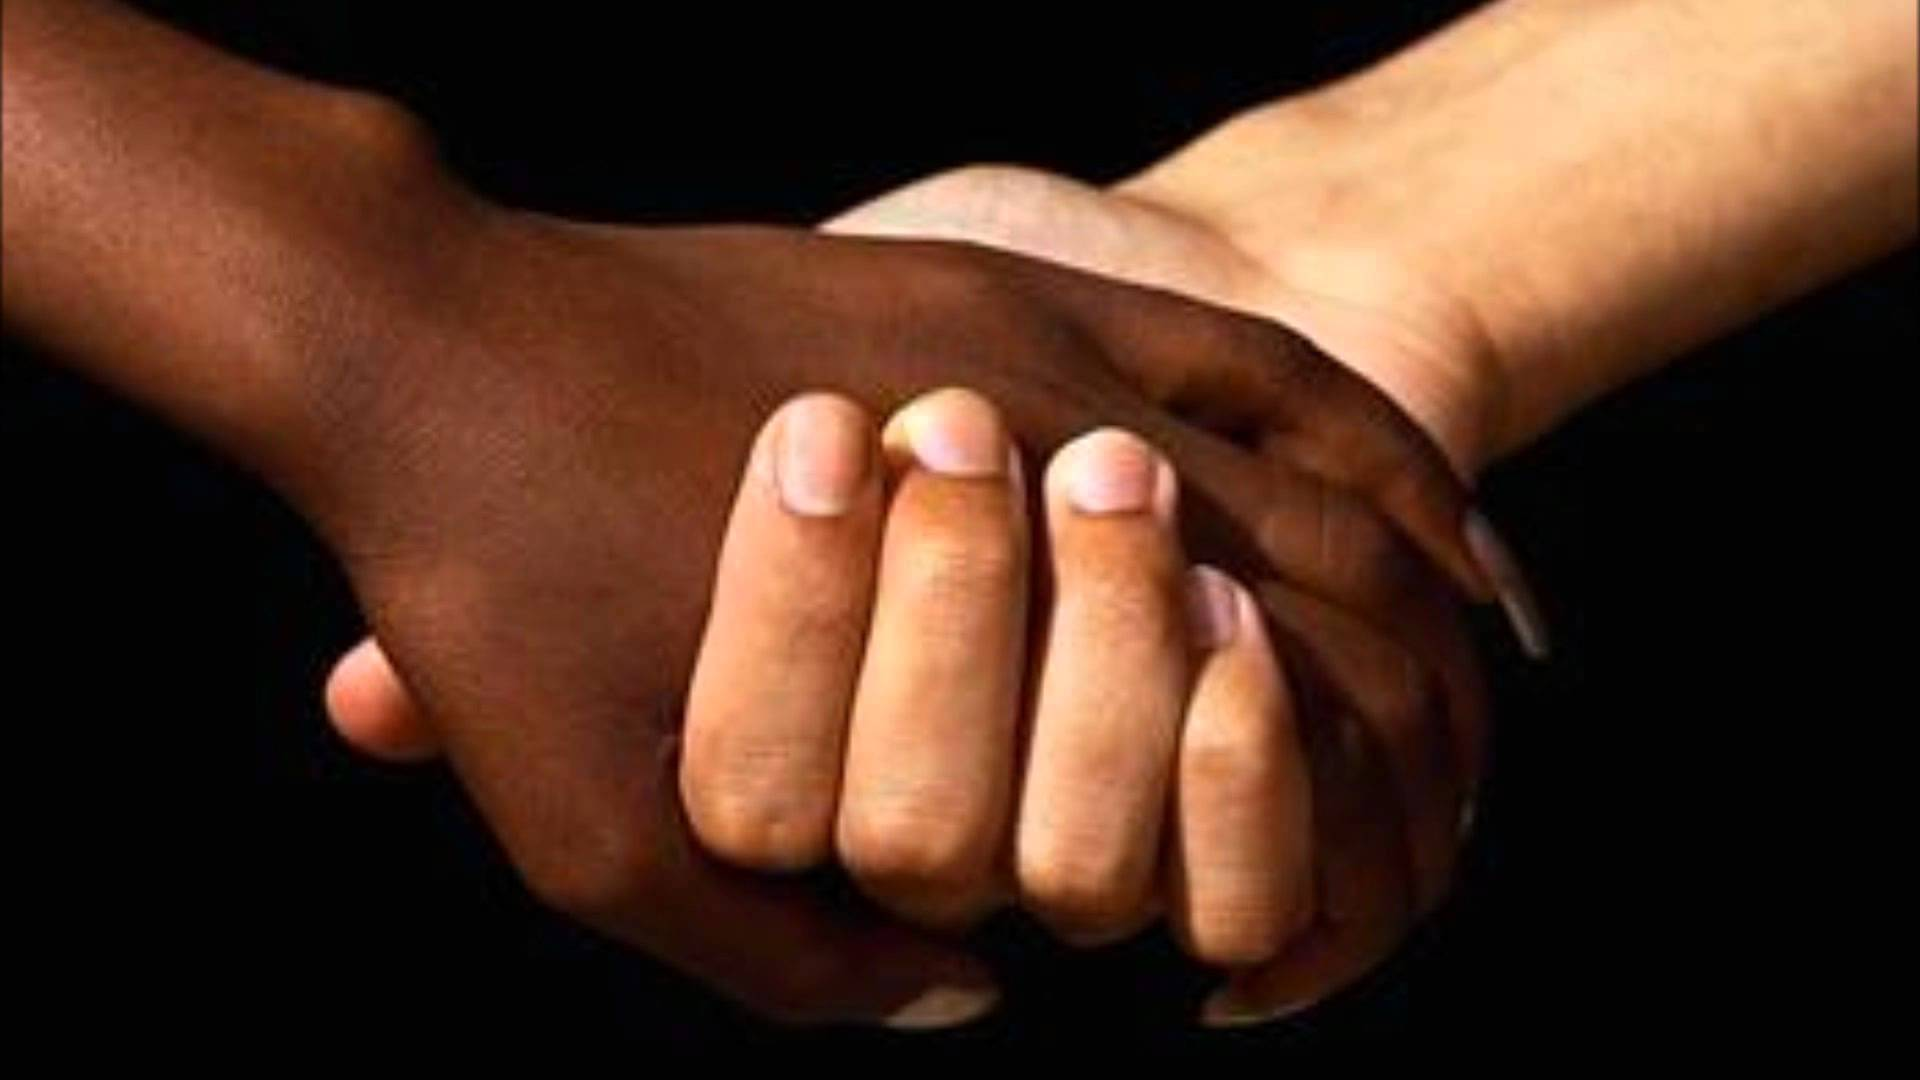 interracial-dating